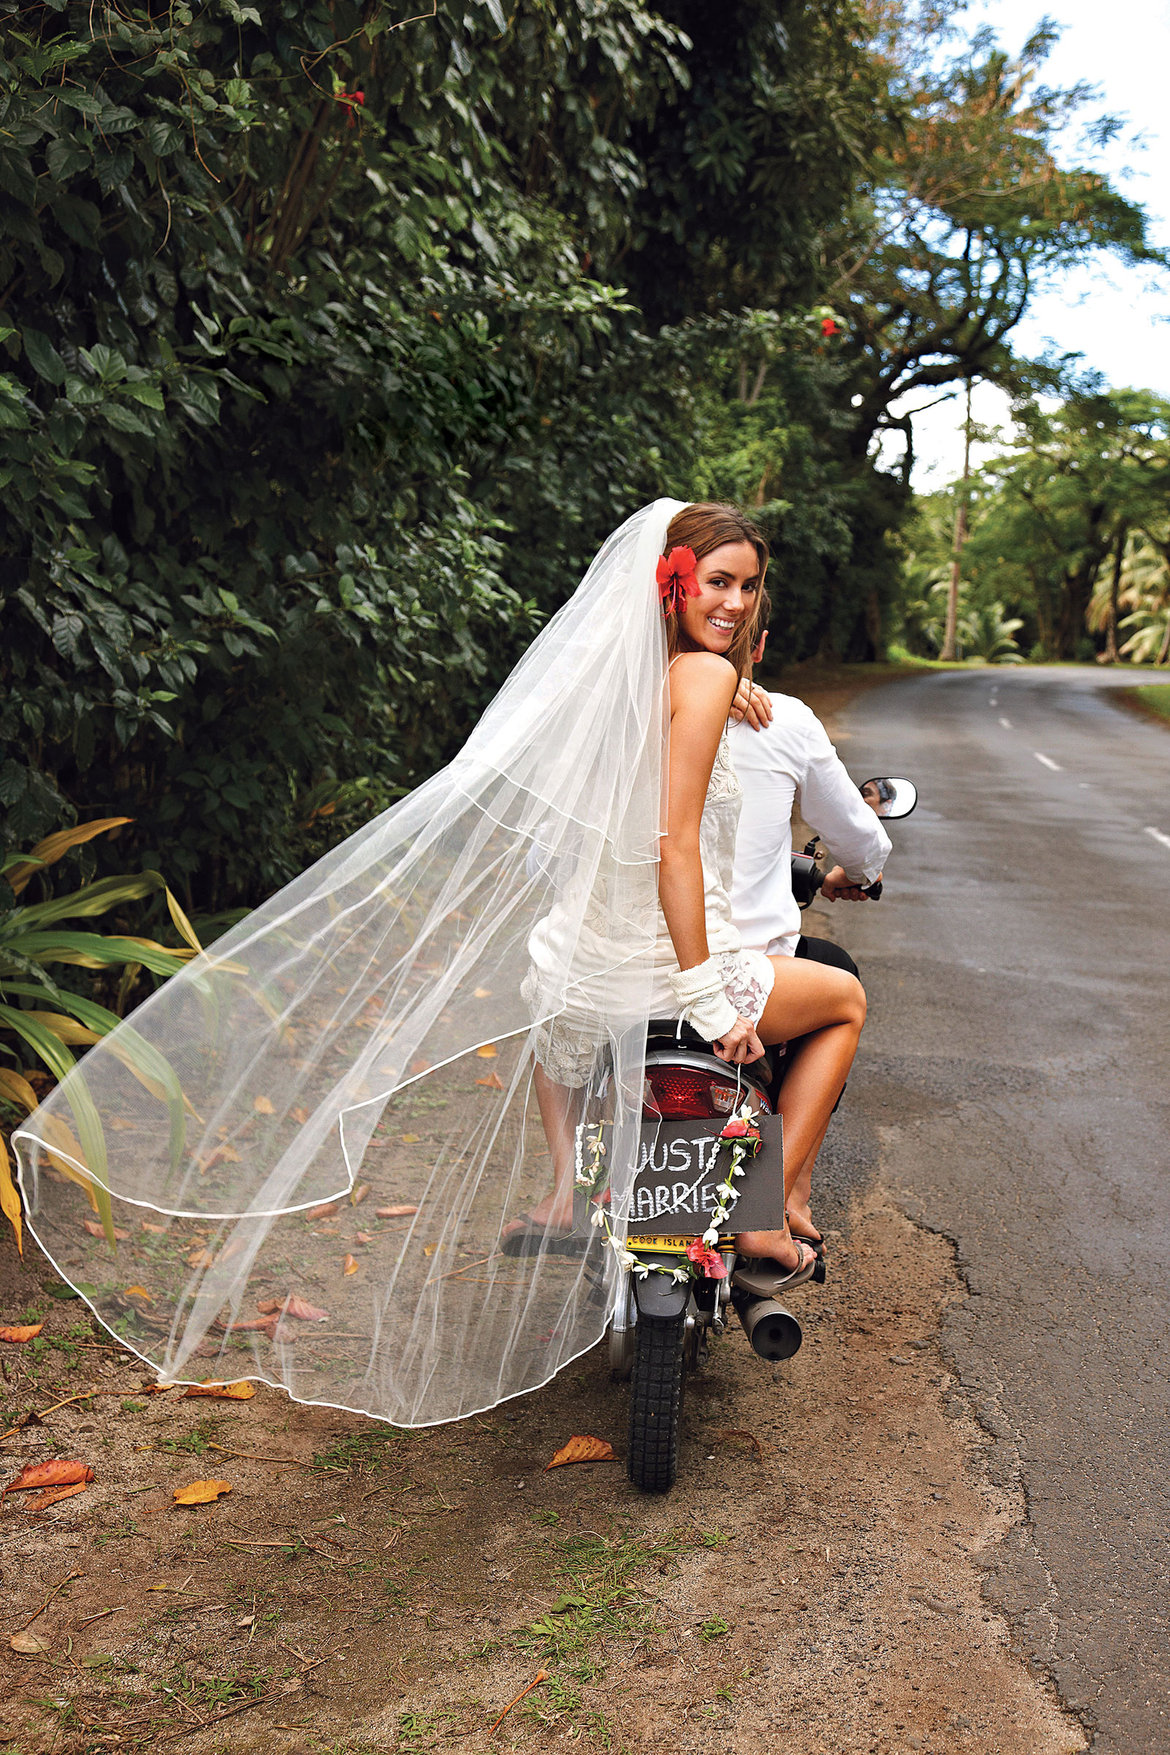 just married bike